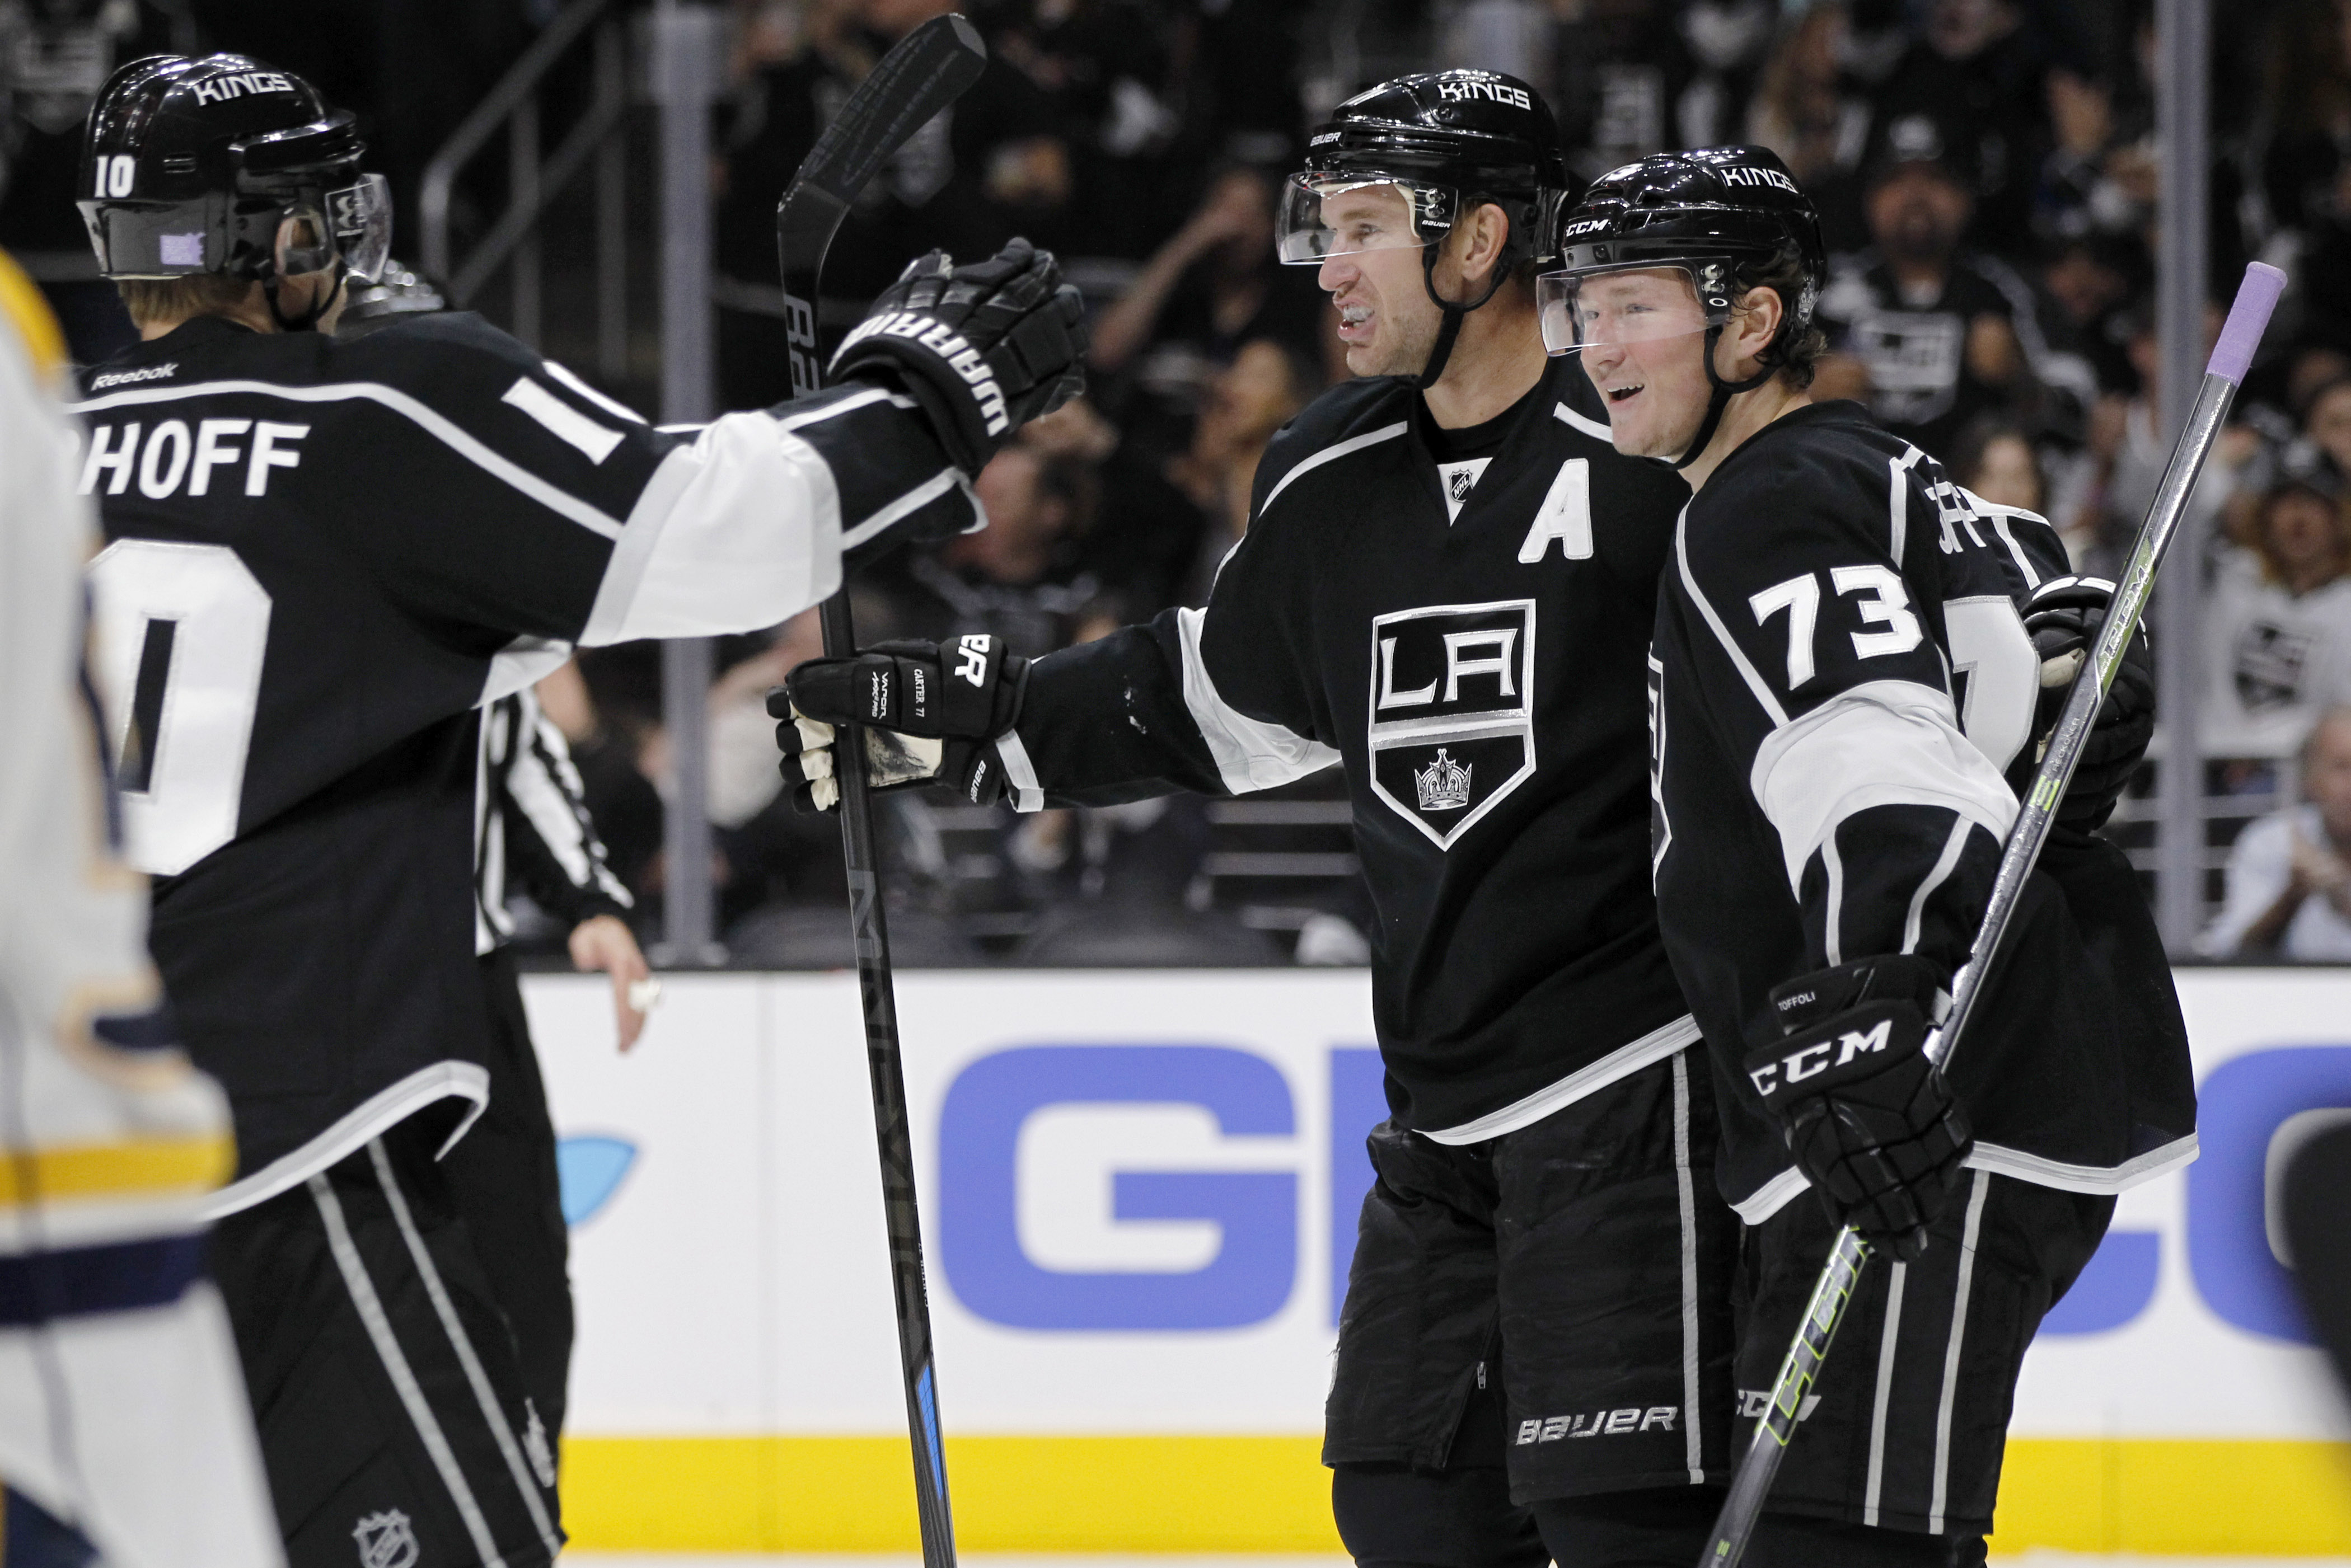 Los Angeles Kings defenseman Christian Ehrhoff (10), of Germany, celebrates with center Jeff Carter, center, on a goal by center Tyler Toffoli (73) during the second period of an NHL hockey game against the Nashville Predators in Los Angeles, Saturday, Oc